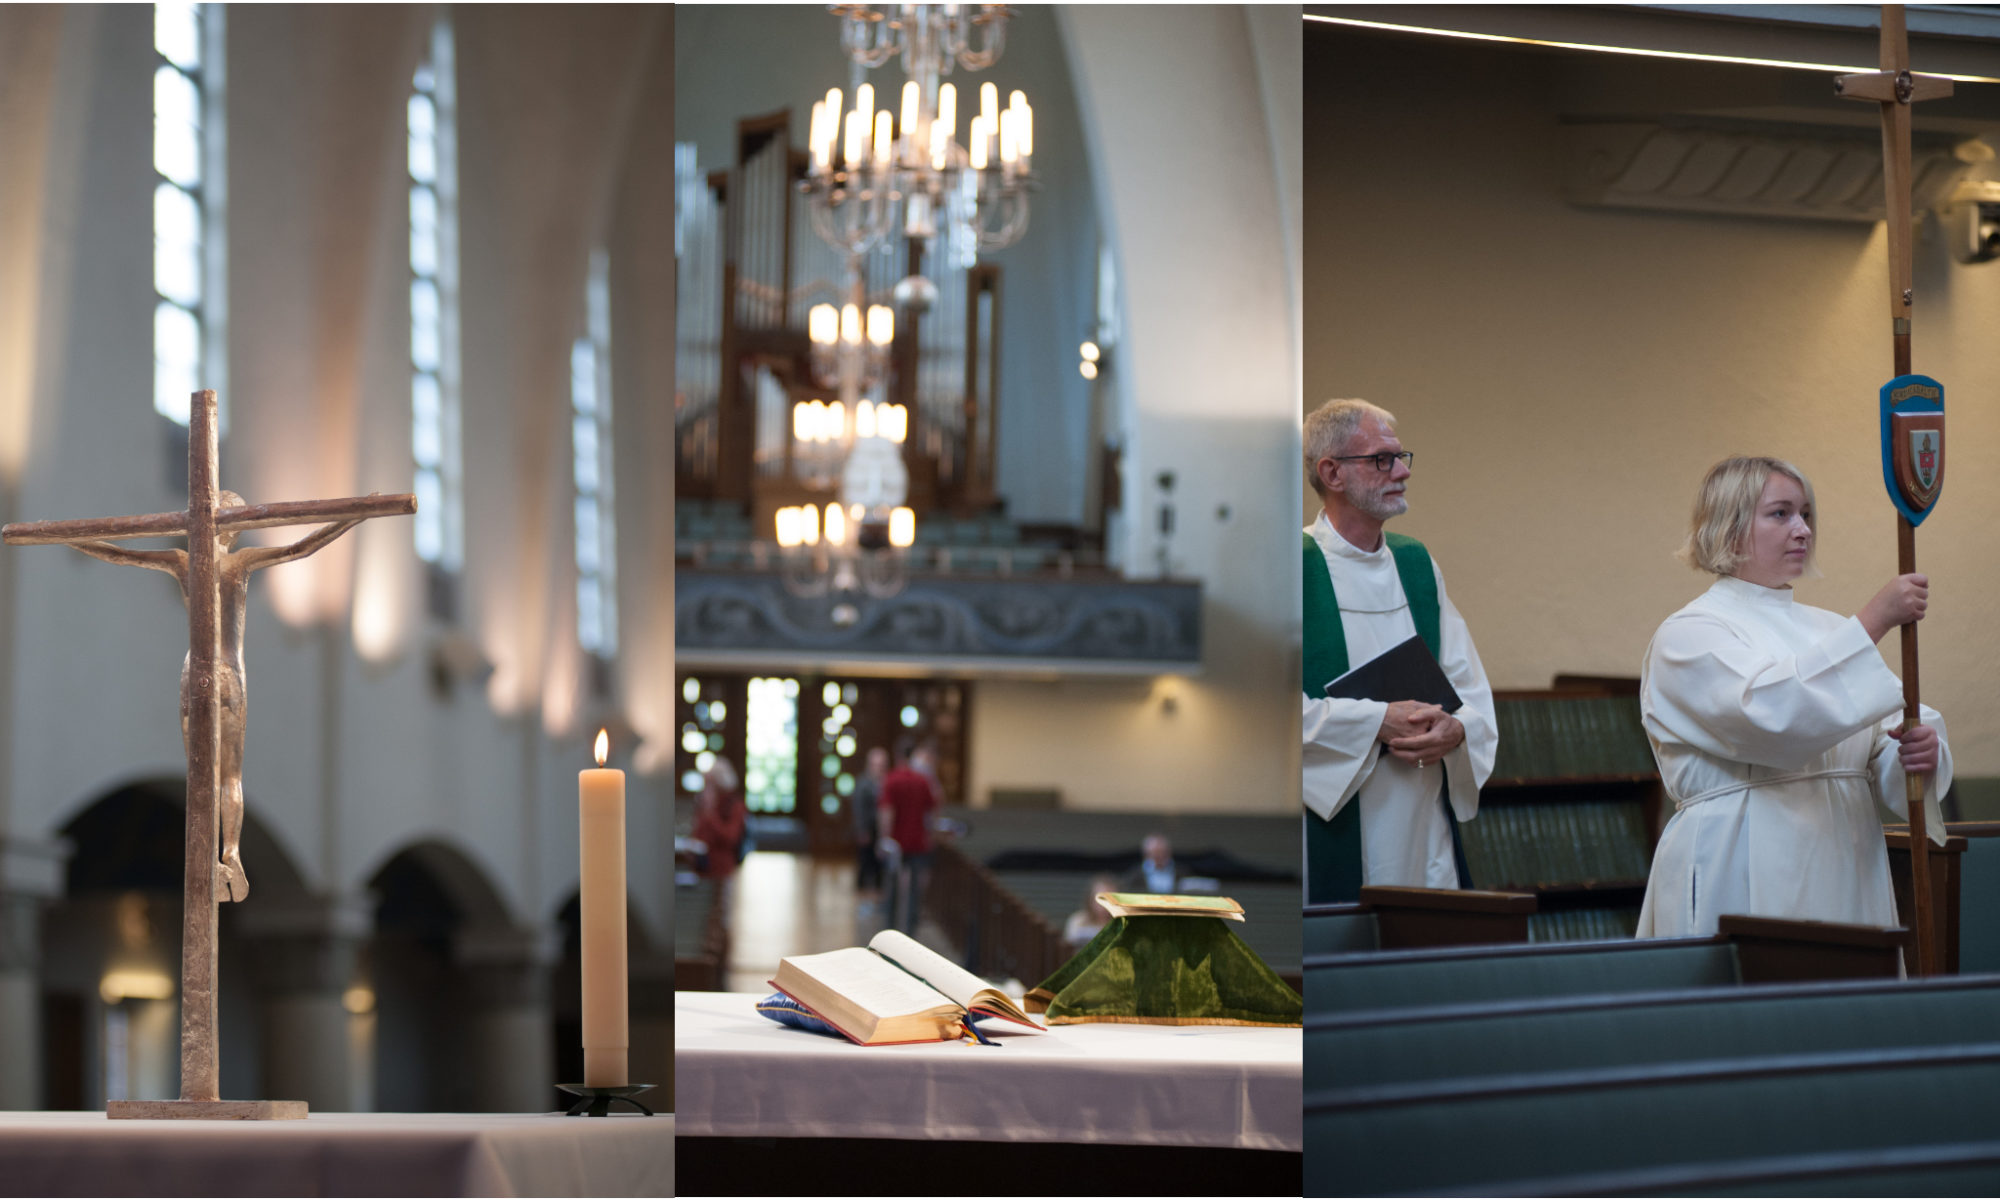 The Anglican Church in Finland